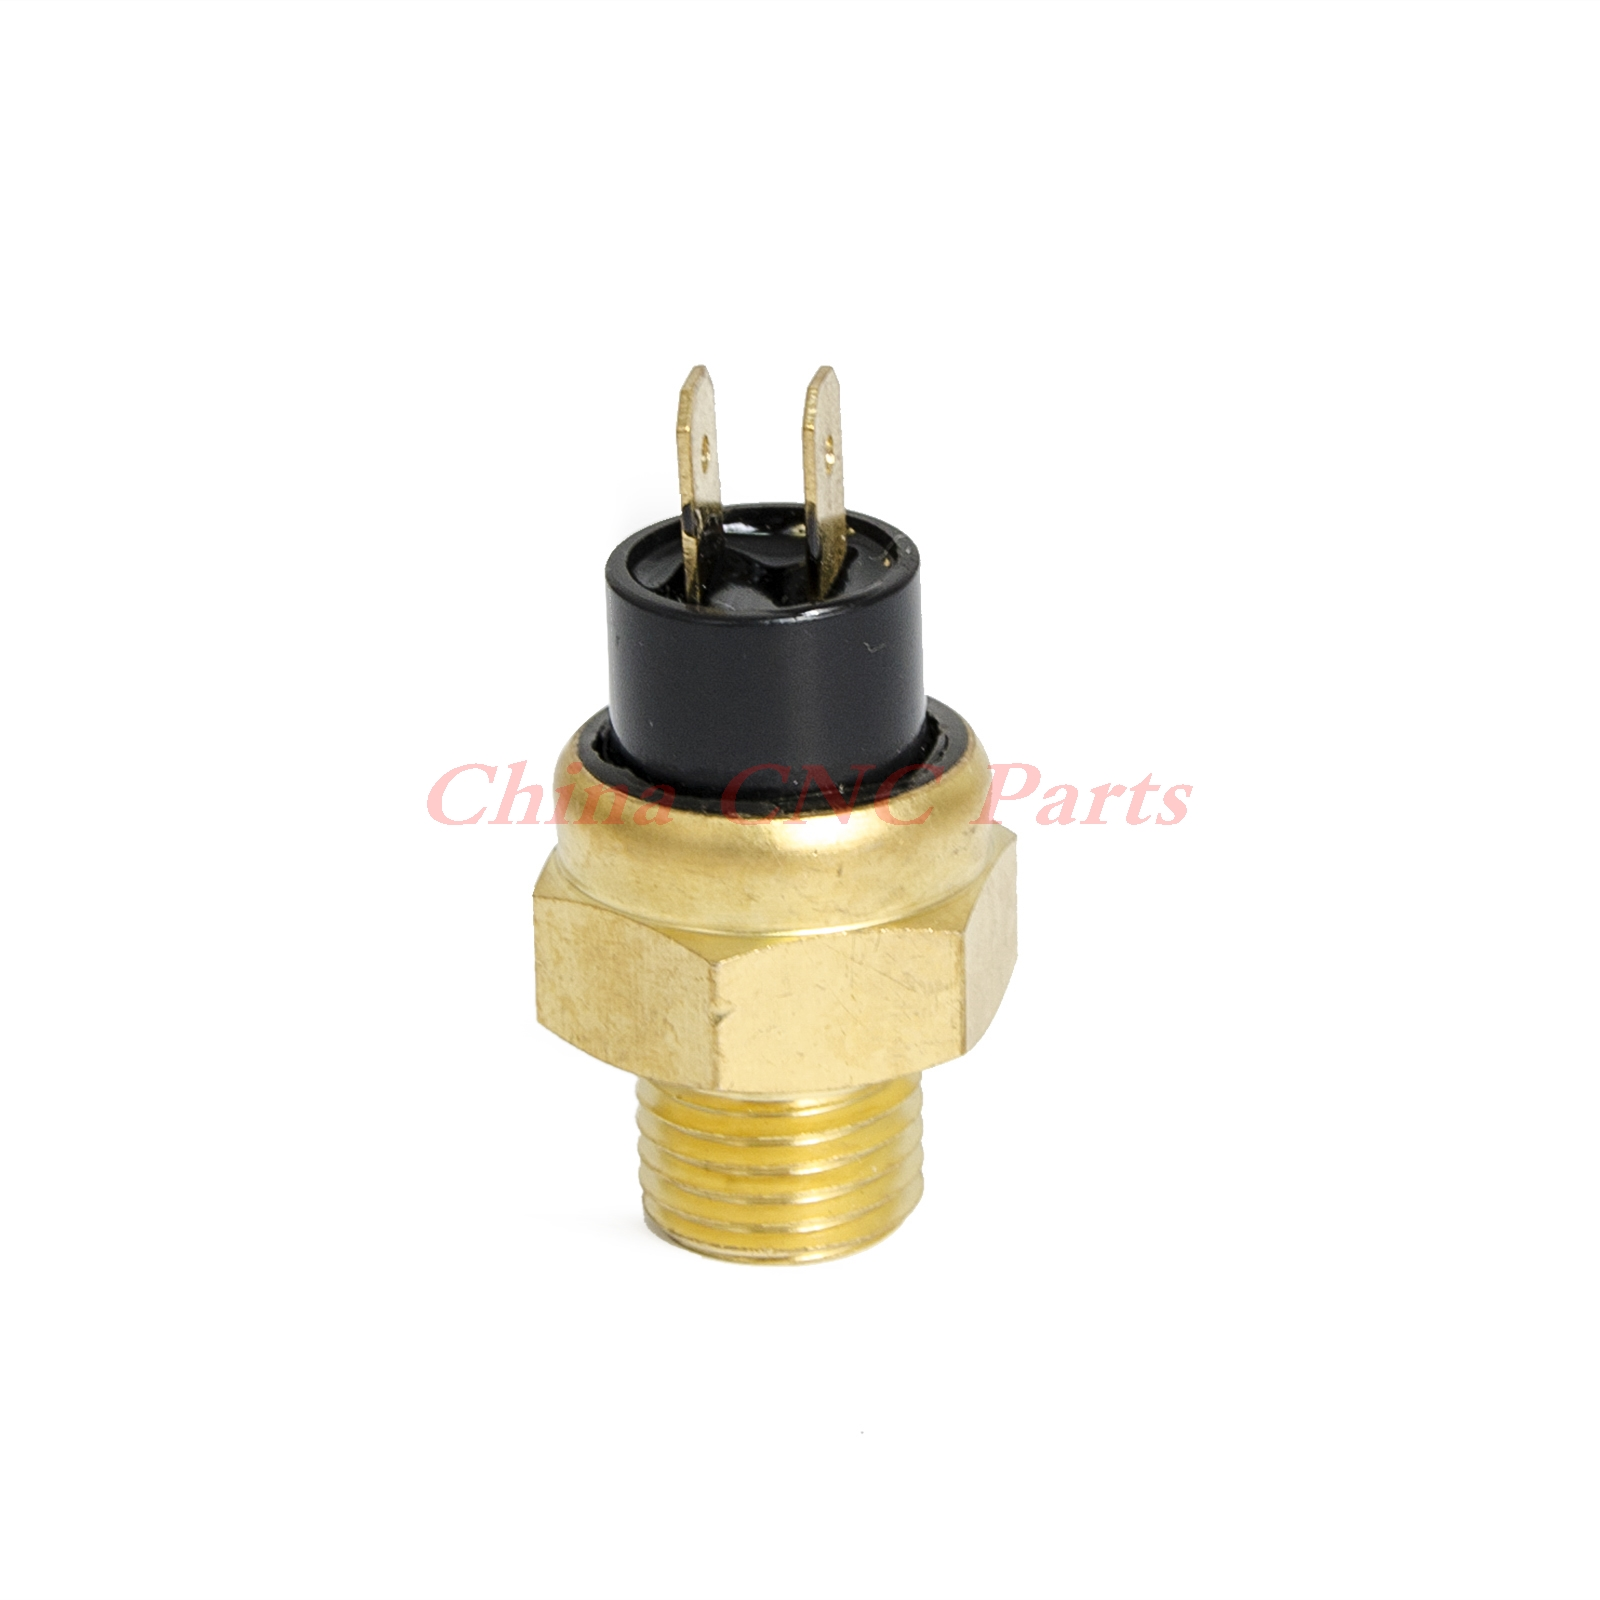 US $6 48 5% OFF Coolant Temperature Switch Sensor Water Temp Radiator  Cooling Fan M14x1 5mm 85 For KTM 250 350 400 450 525 530 #59011079000 on